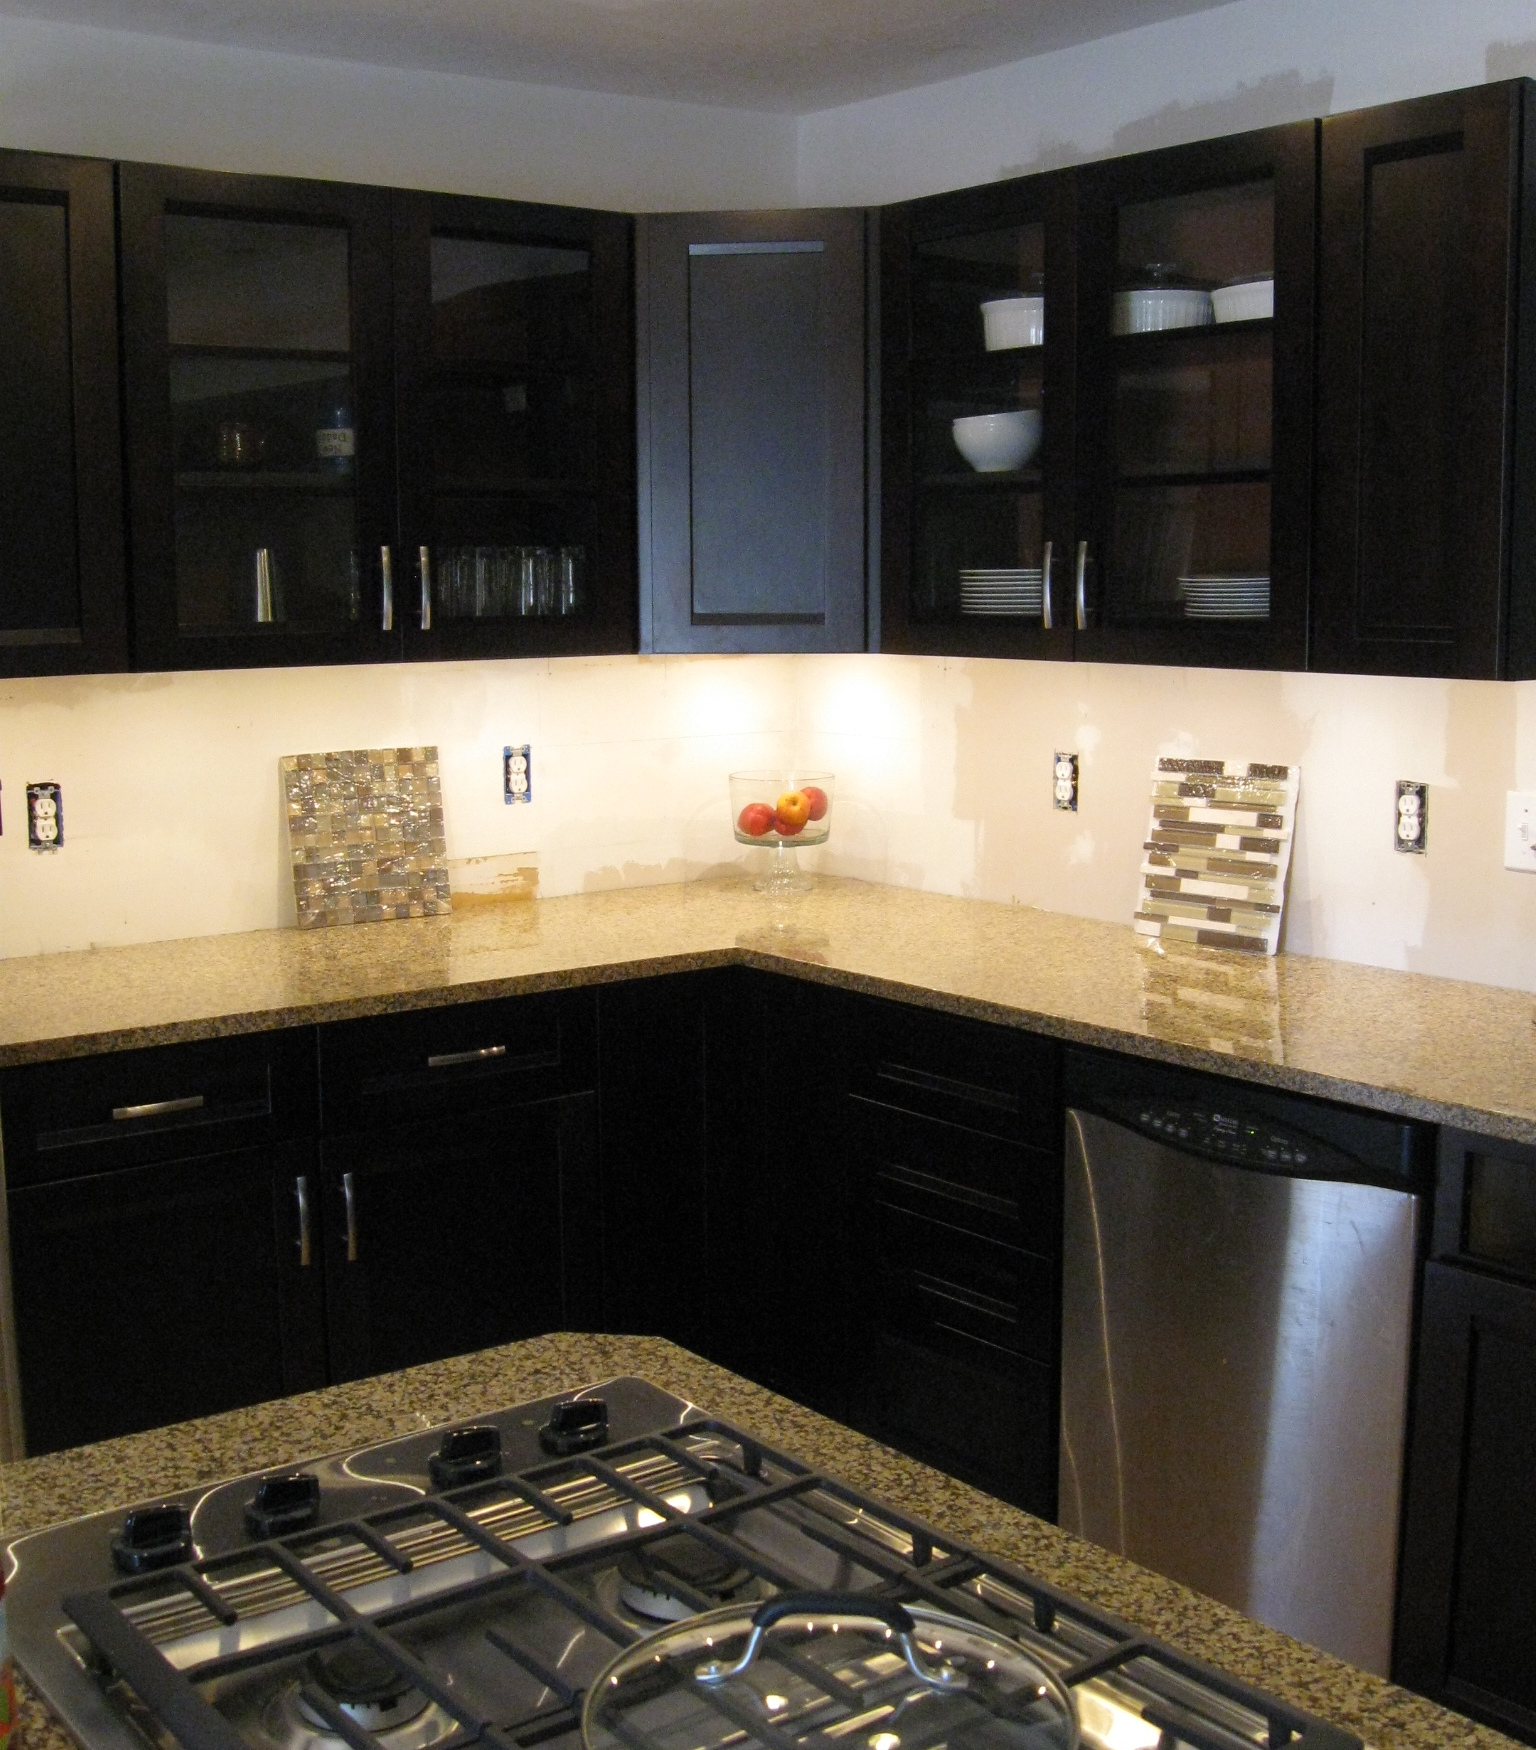 kitchenazcabinets kitchen remodeling phoenix az Free LED Under Cabinet Lighting Glendale AZ